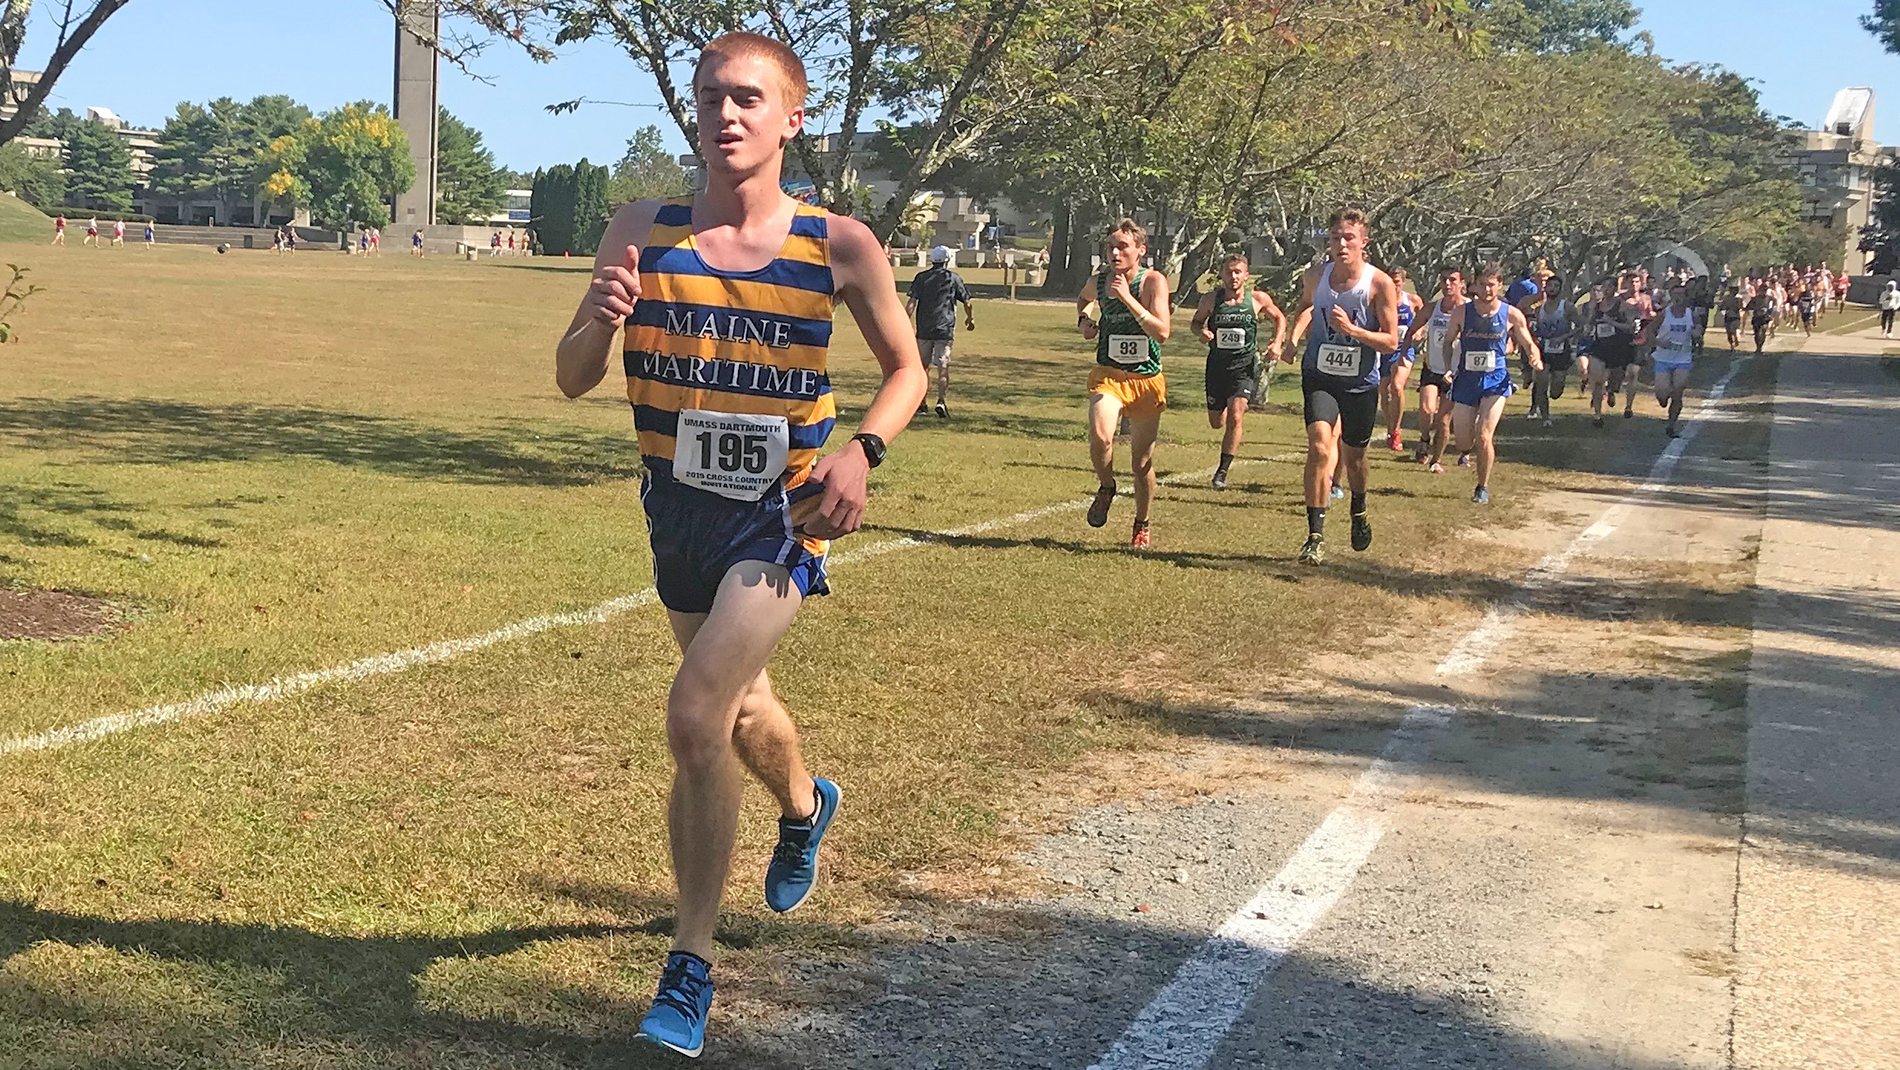 Mariners Race in UMass Dartmouth Invitational